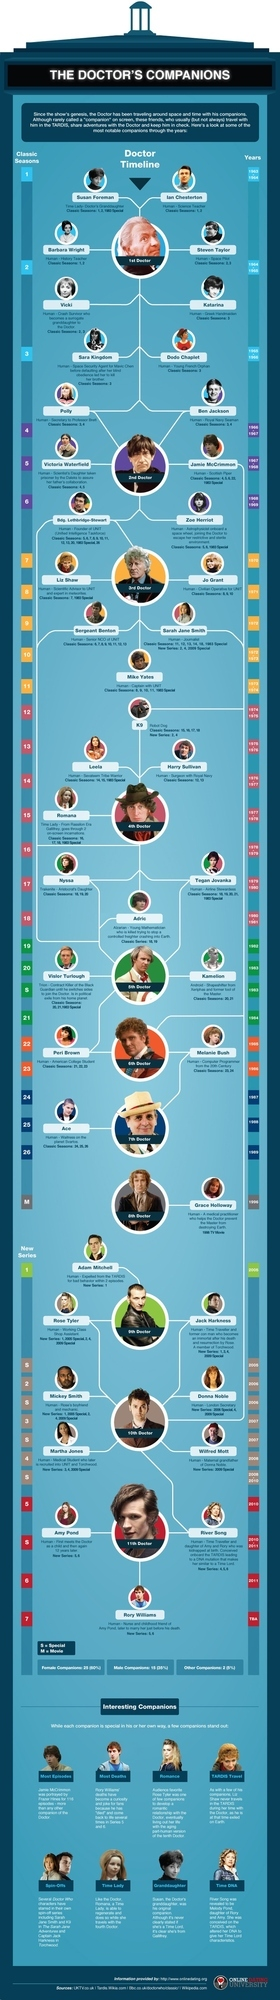 History Of The Doctor's Companions (Infographic)